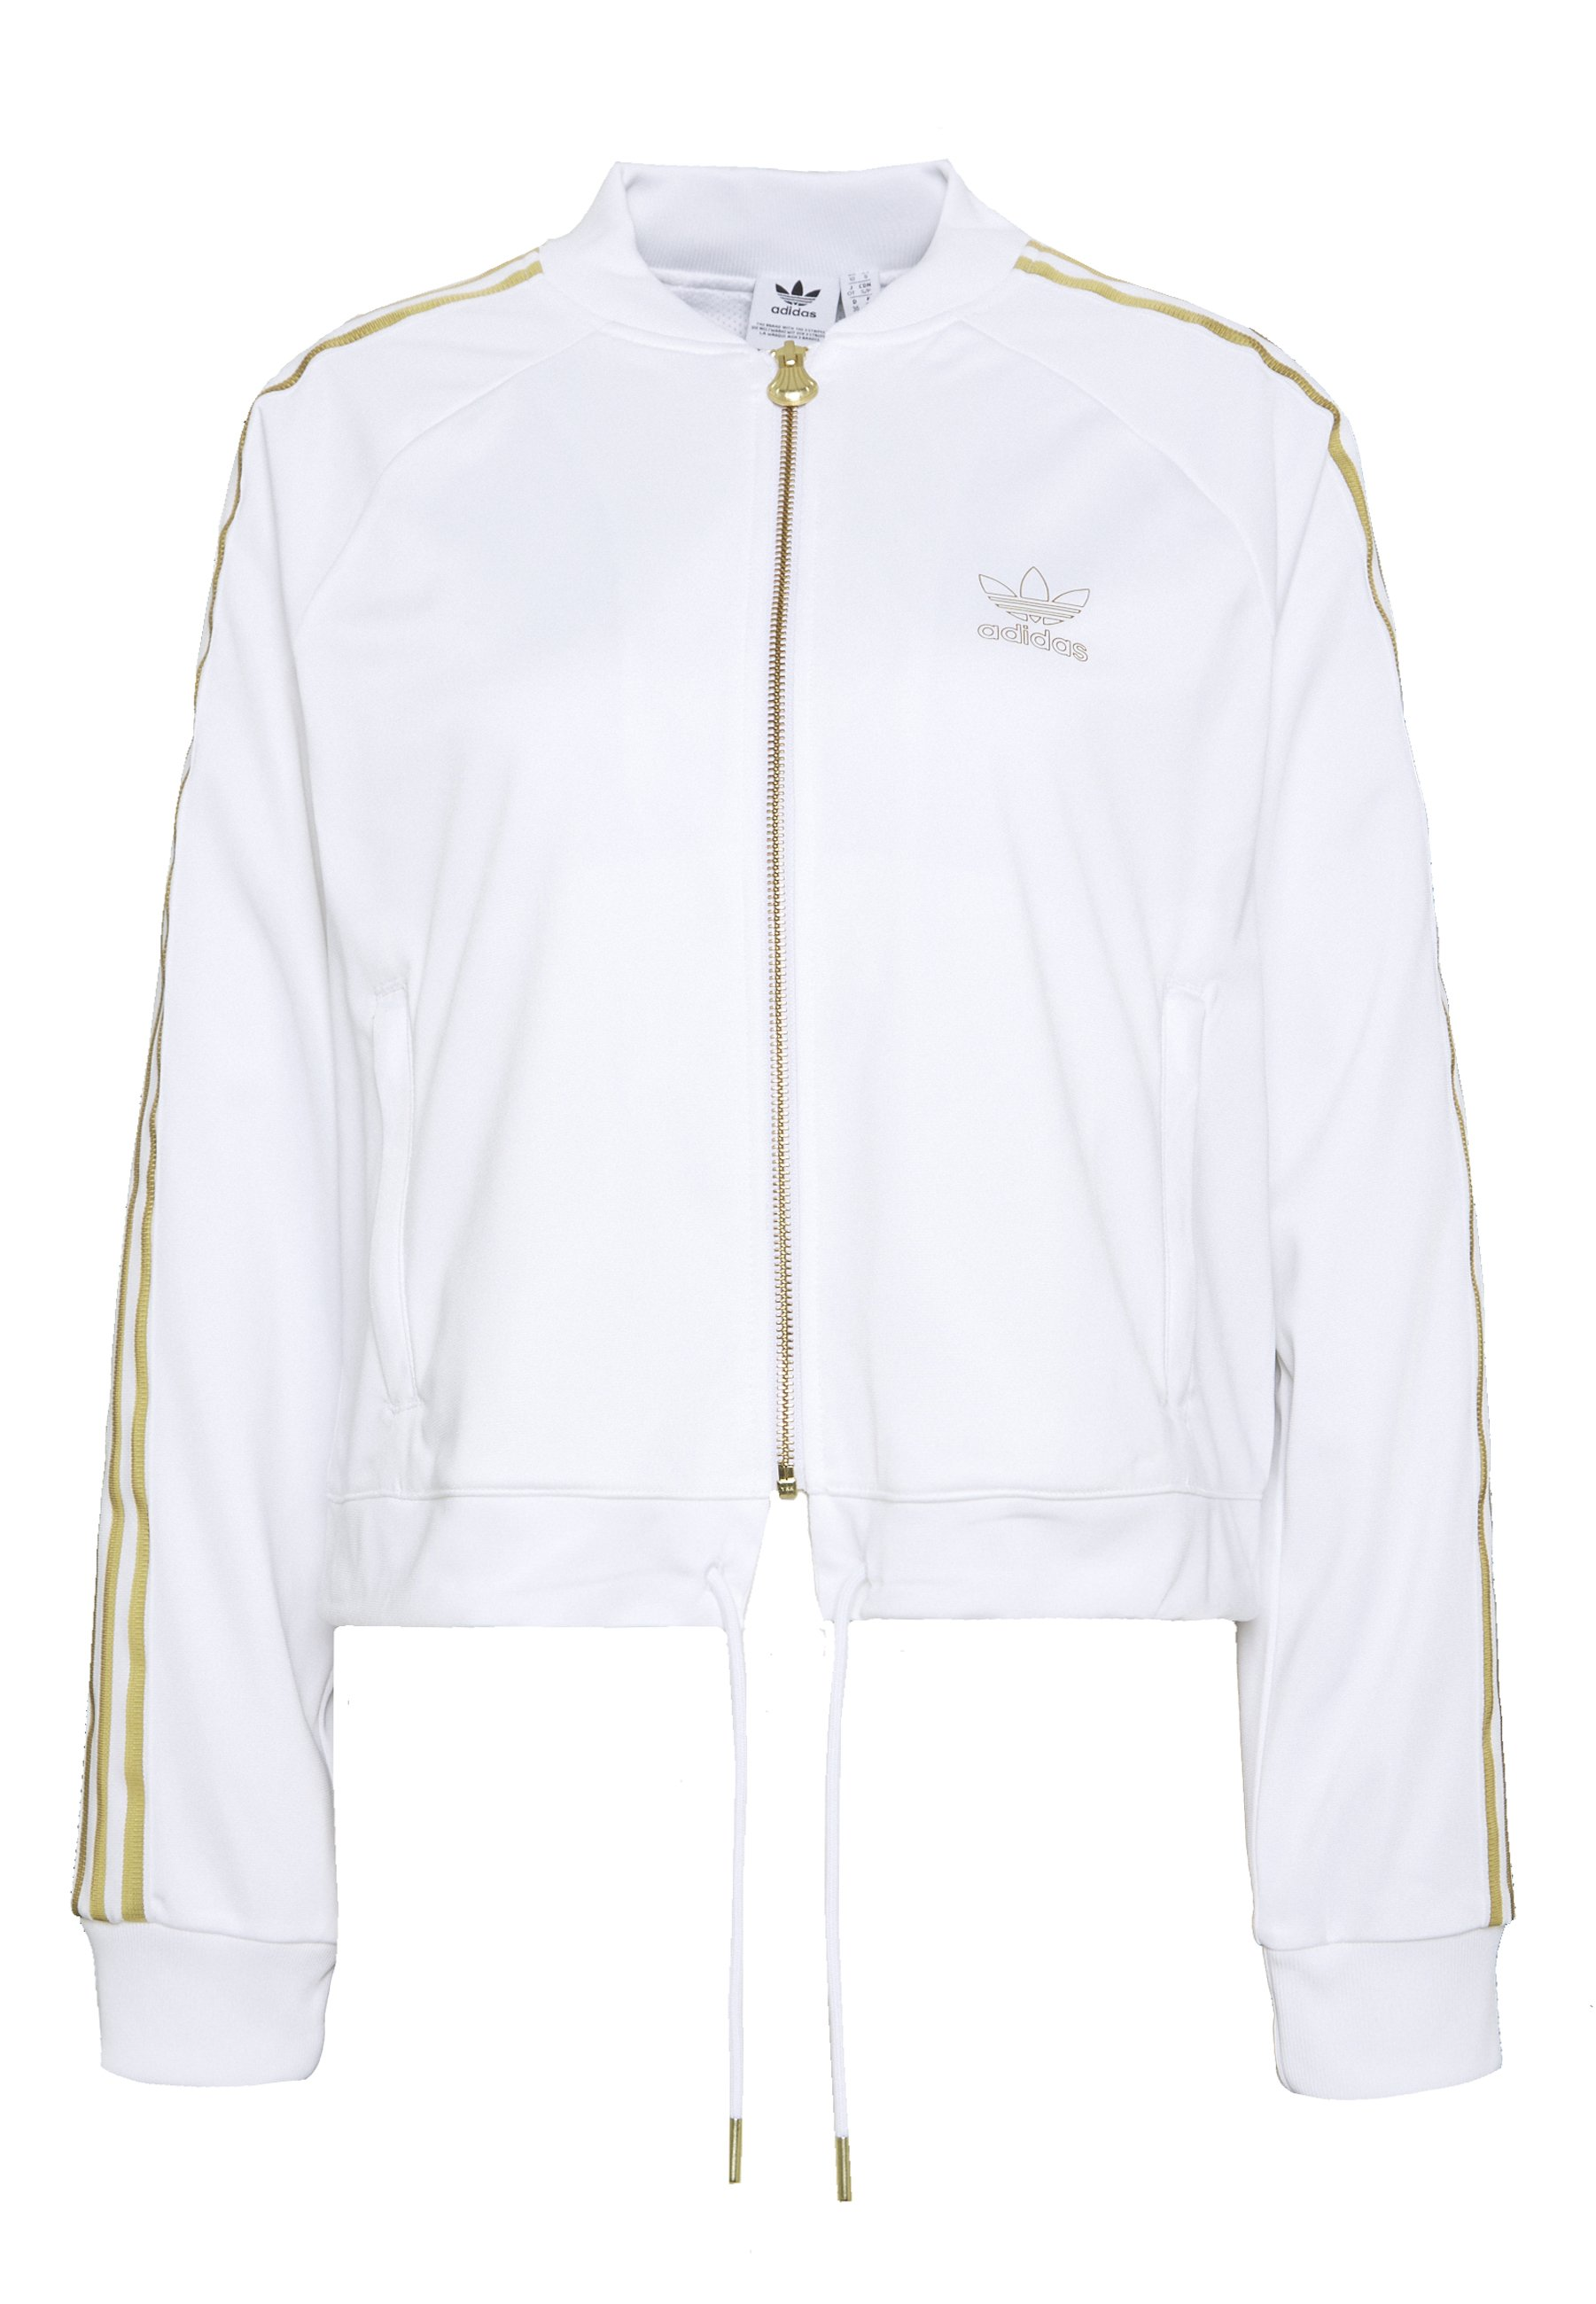 SUPERSTAR 2.0 SPORT INSPIRED TRACK TOP Trainingsjacke white